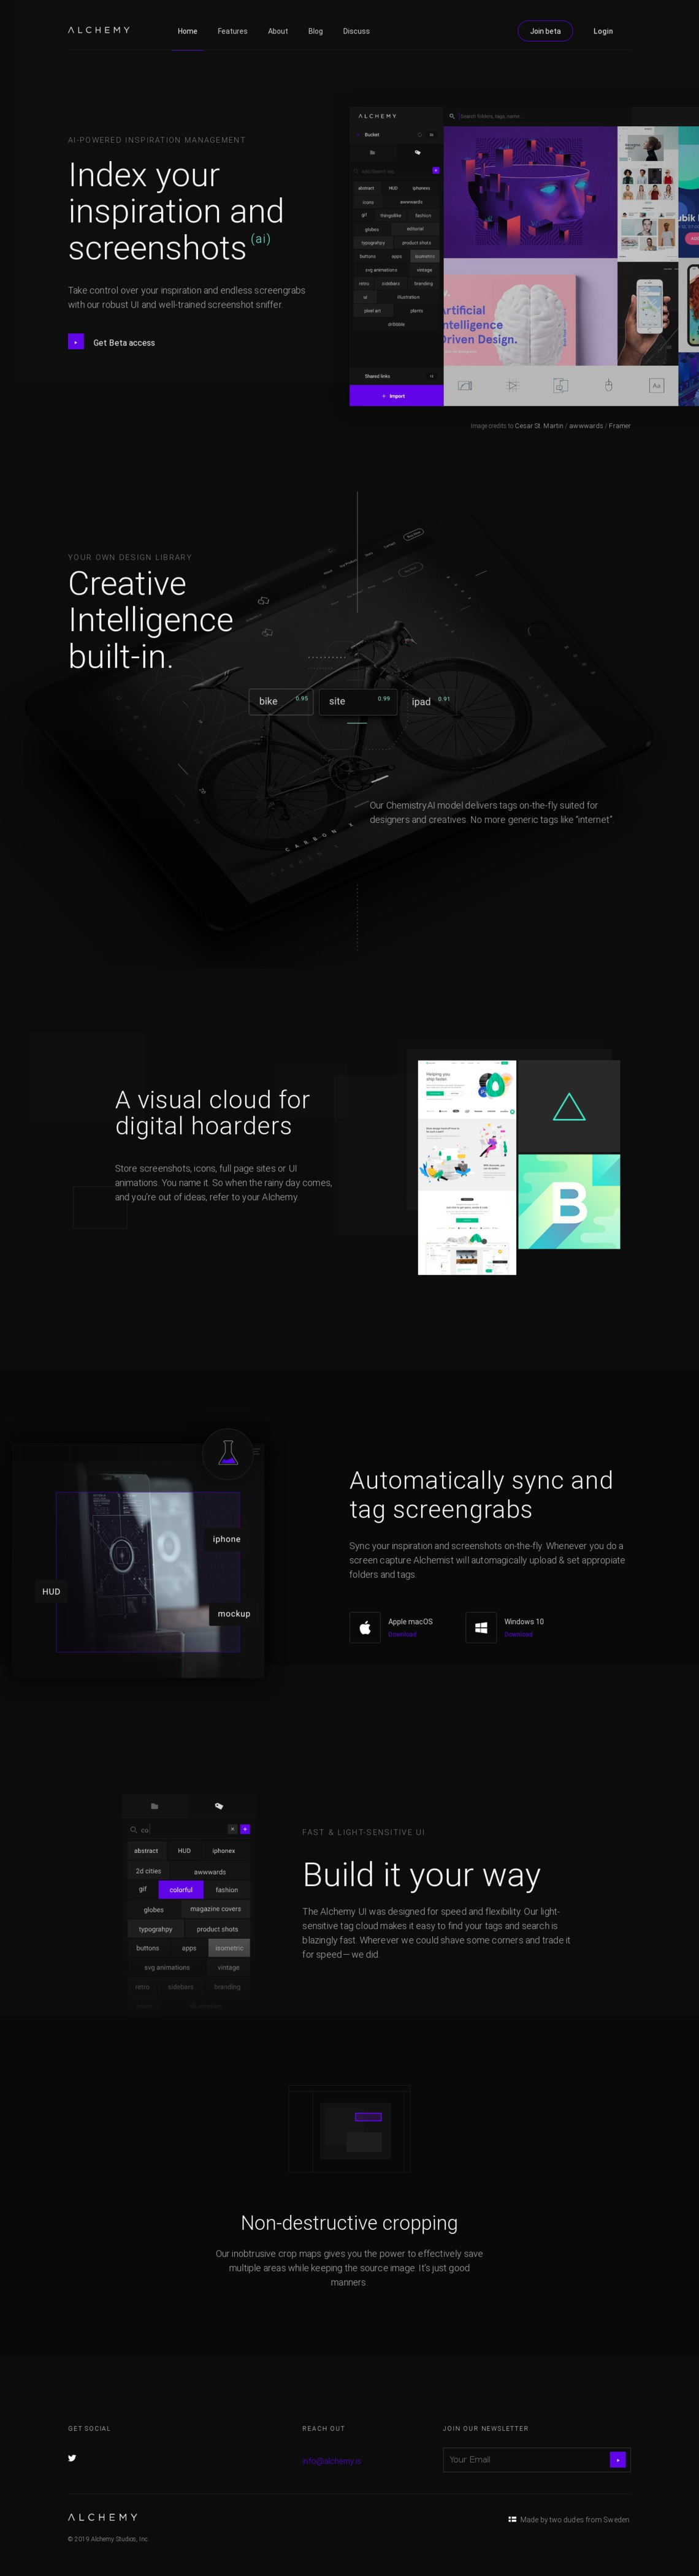 AI-driven inspiration and screenshot platform - Alchemy.is